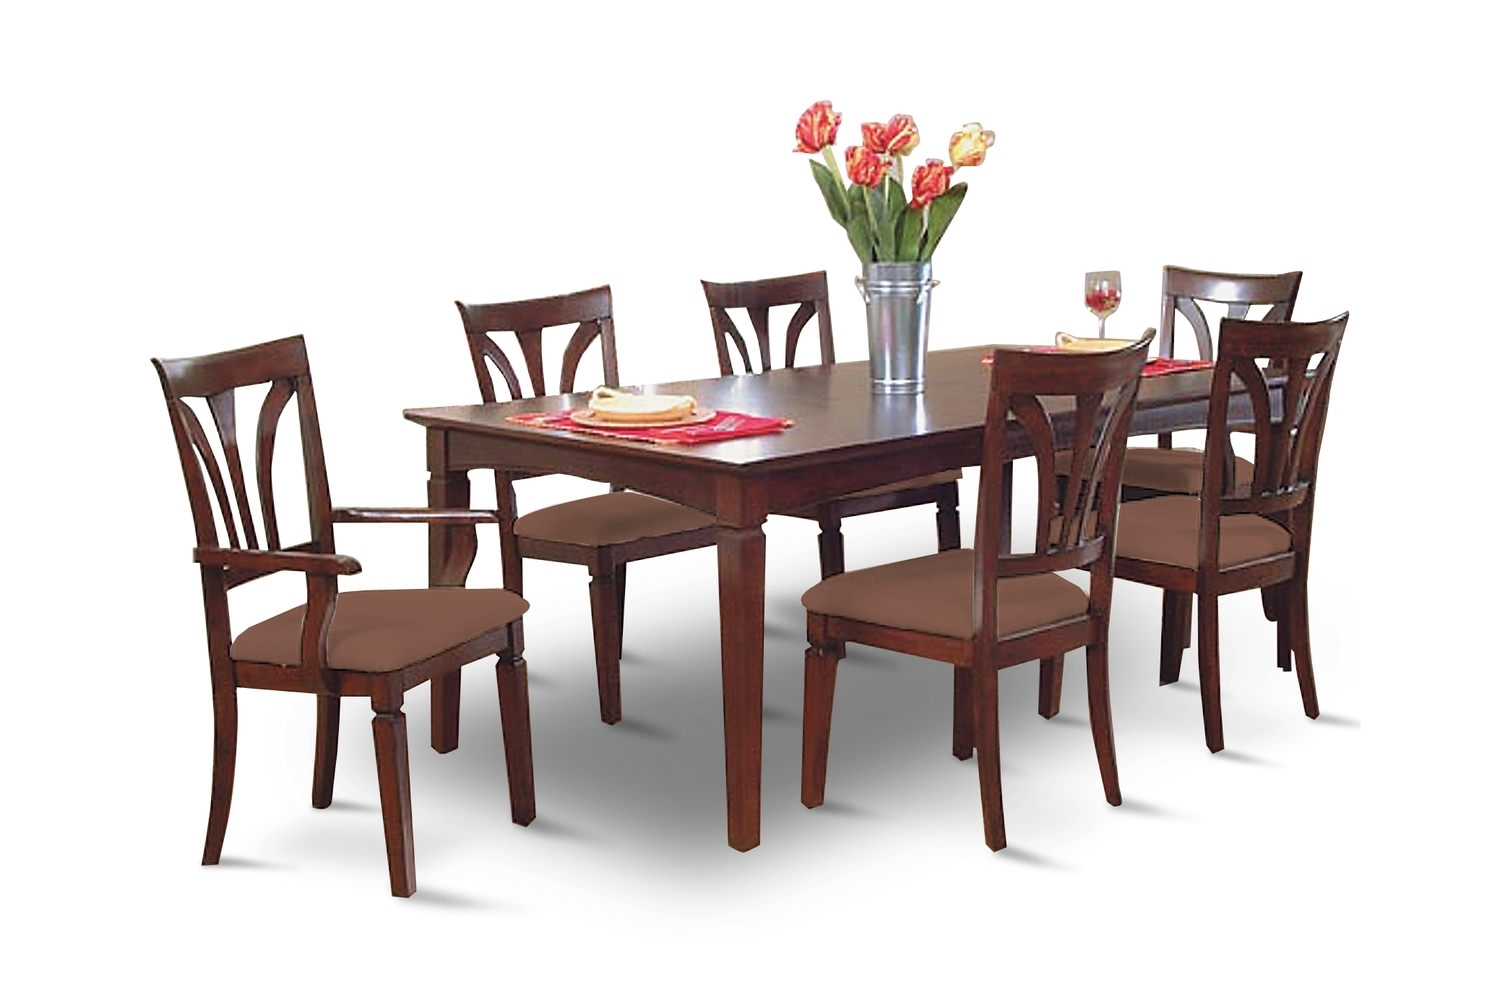 Dining Sets – Kitchen & Dining Room Sets – Hom Furniture Inside Most Recently Released Magnolia Home Breakfast Round Black Dining Tables (Image 7 of 20)